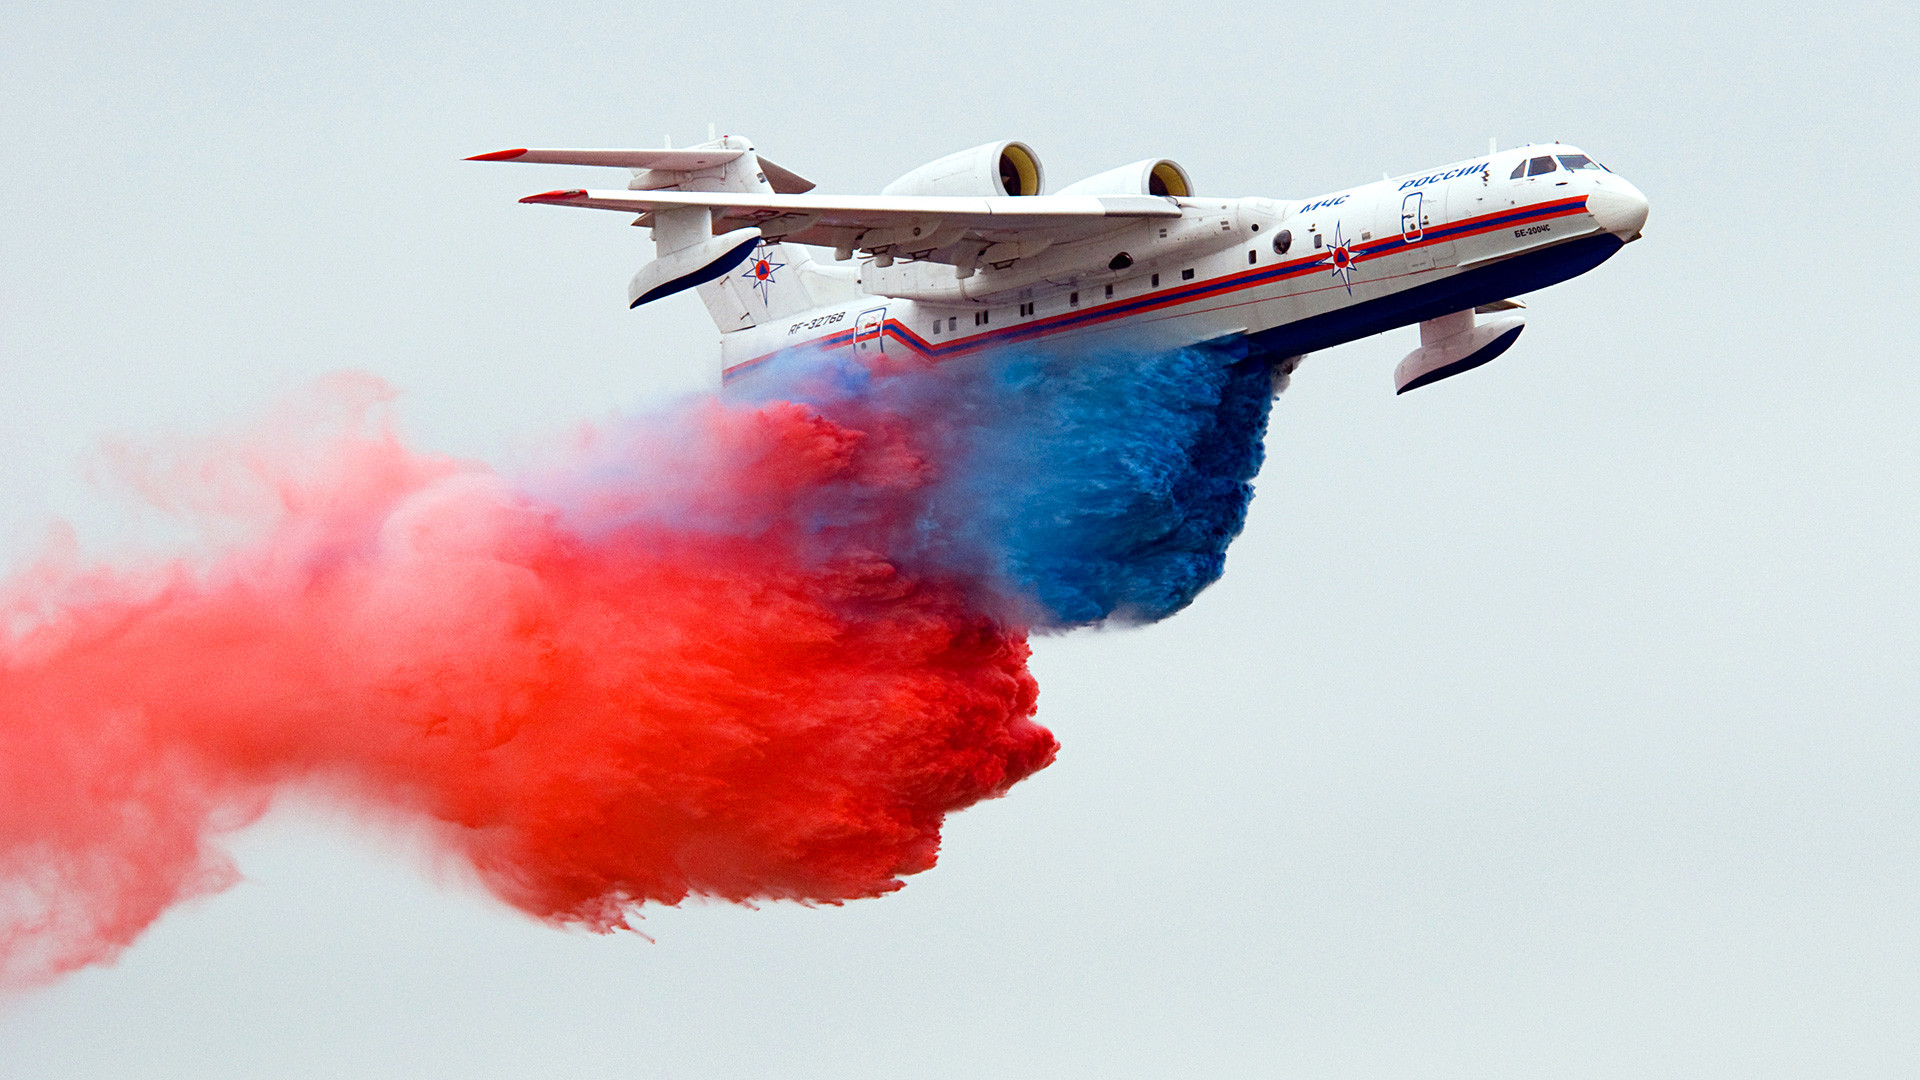 Colored water release from Beriev BE-200 aircraft at MAKS-2009 aeroshow